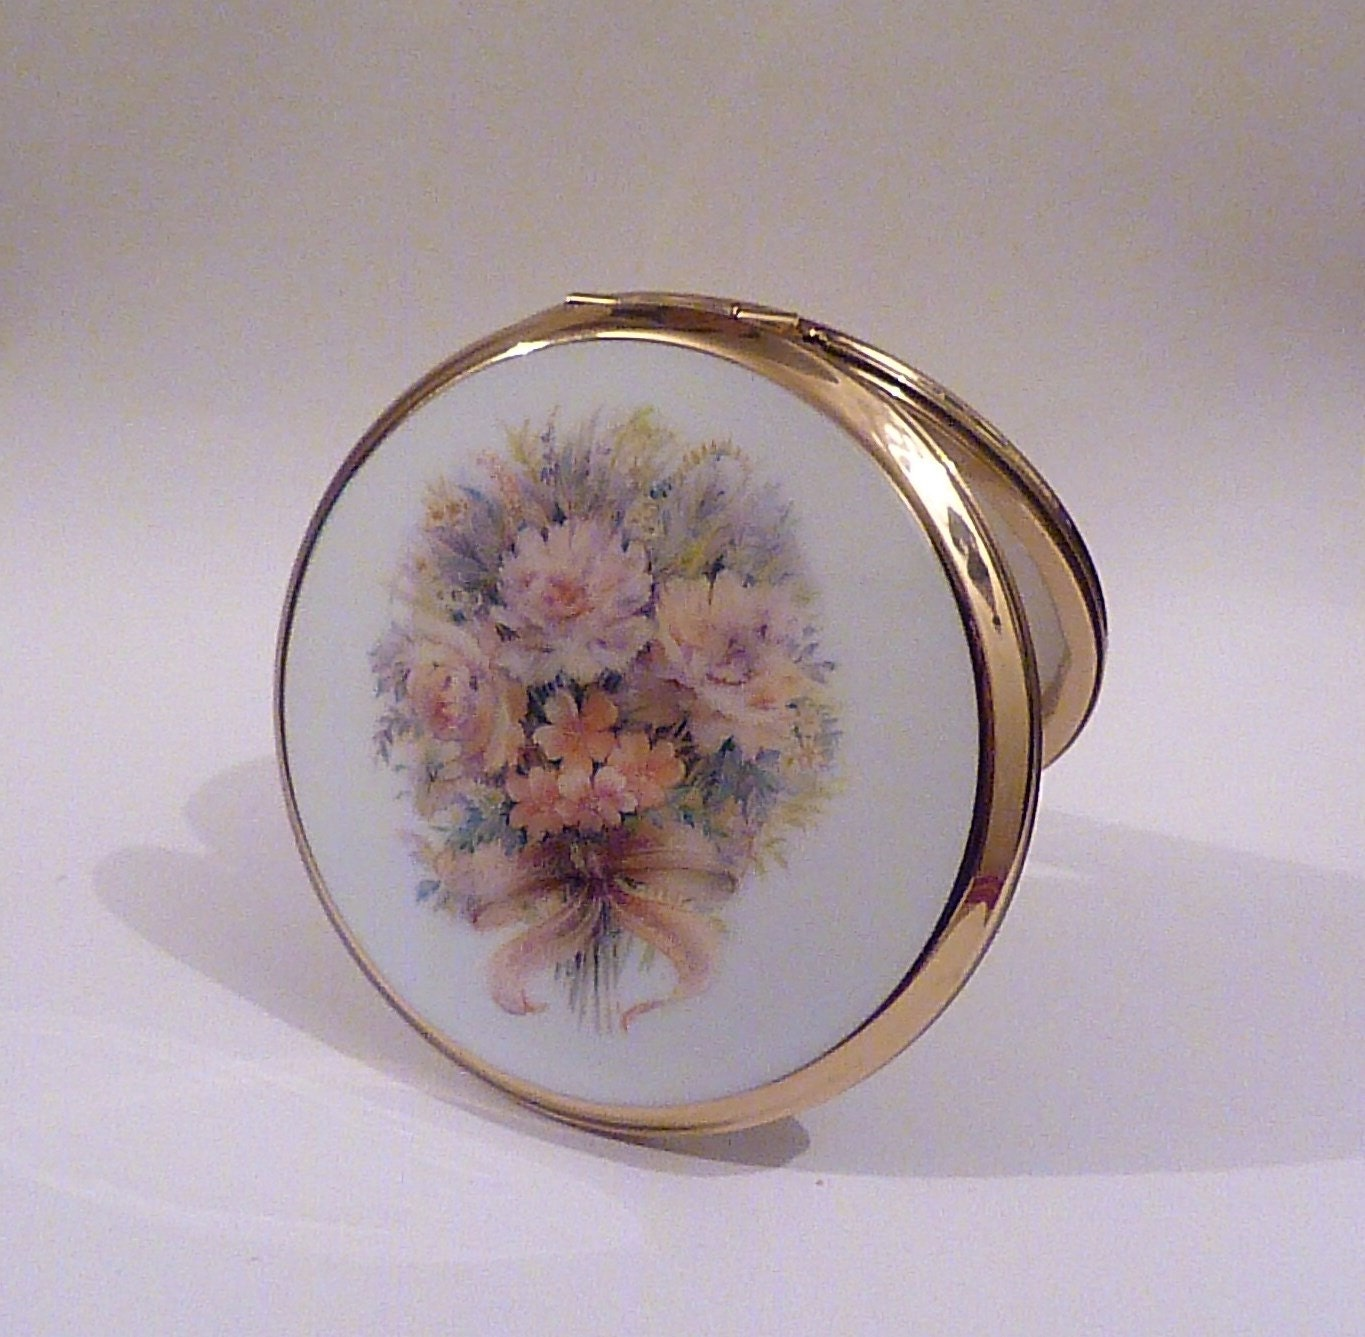 Retro Stratton Wedding Bouquet powder compact bridesmaids gifts pink floral compact mirrors for sale